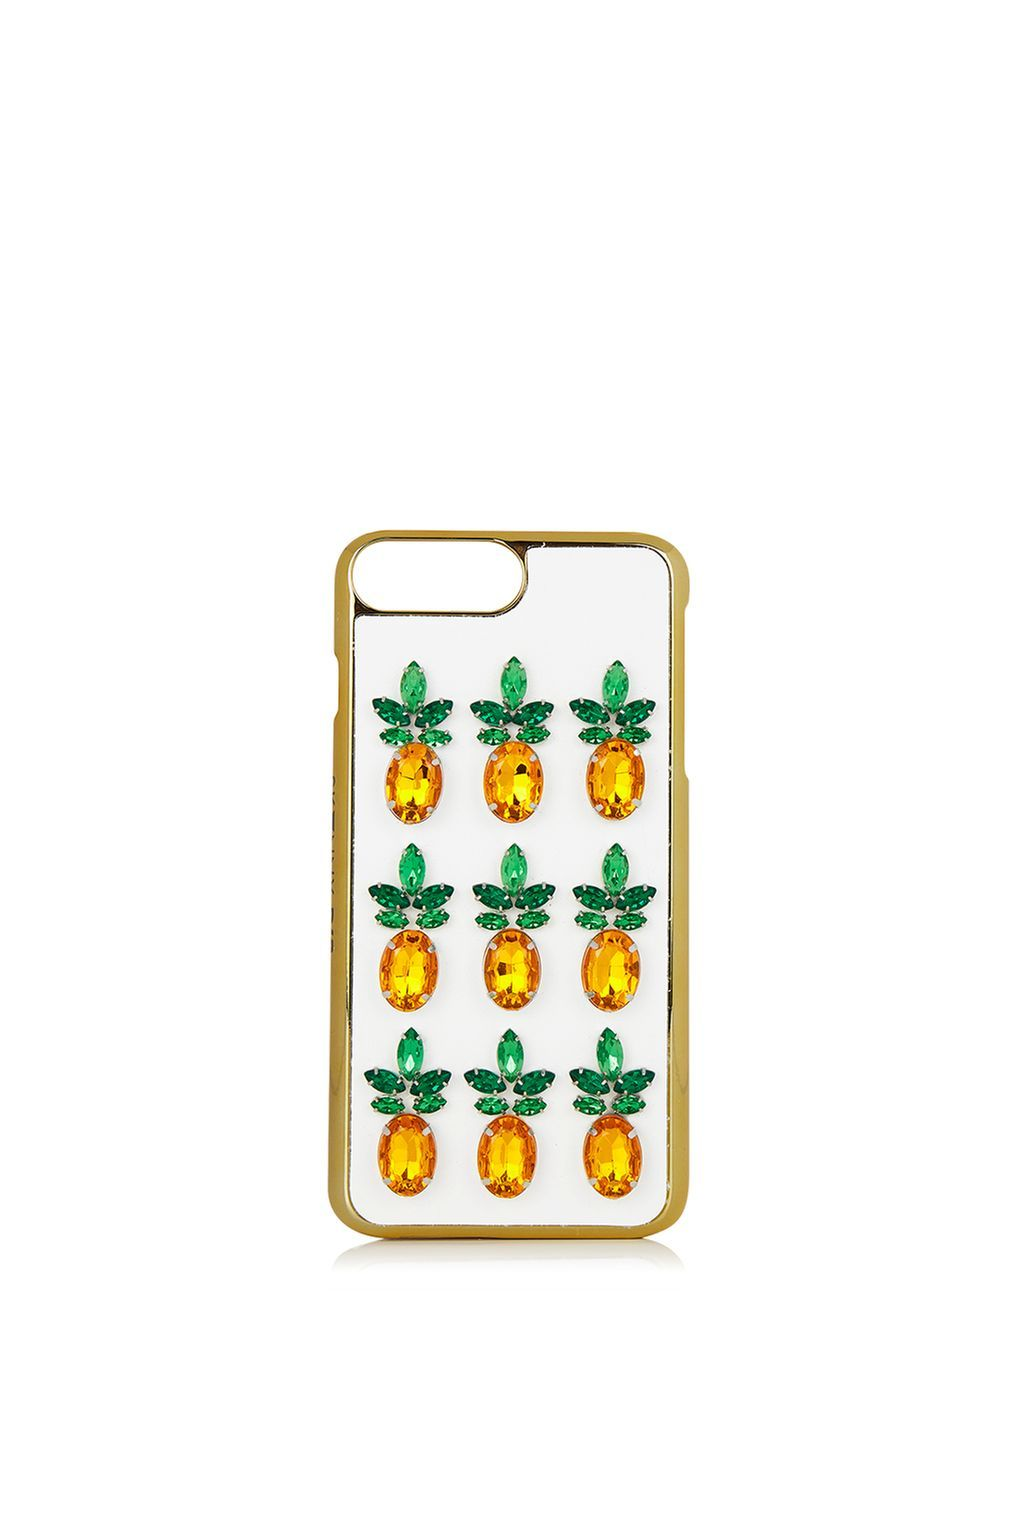 **Pineapple Gem iPhone 6/7 Plus Case by Skinnydip - iPhone Accessories - Bags & Accessories - Topshop